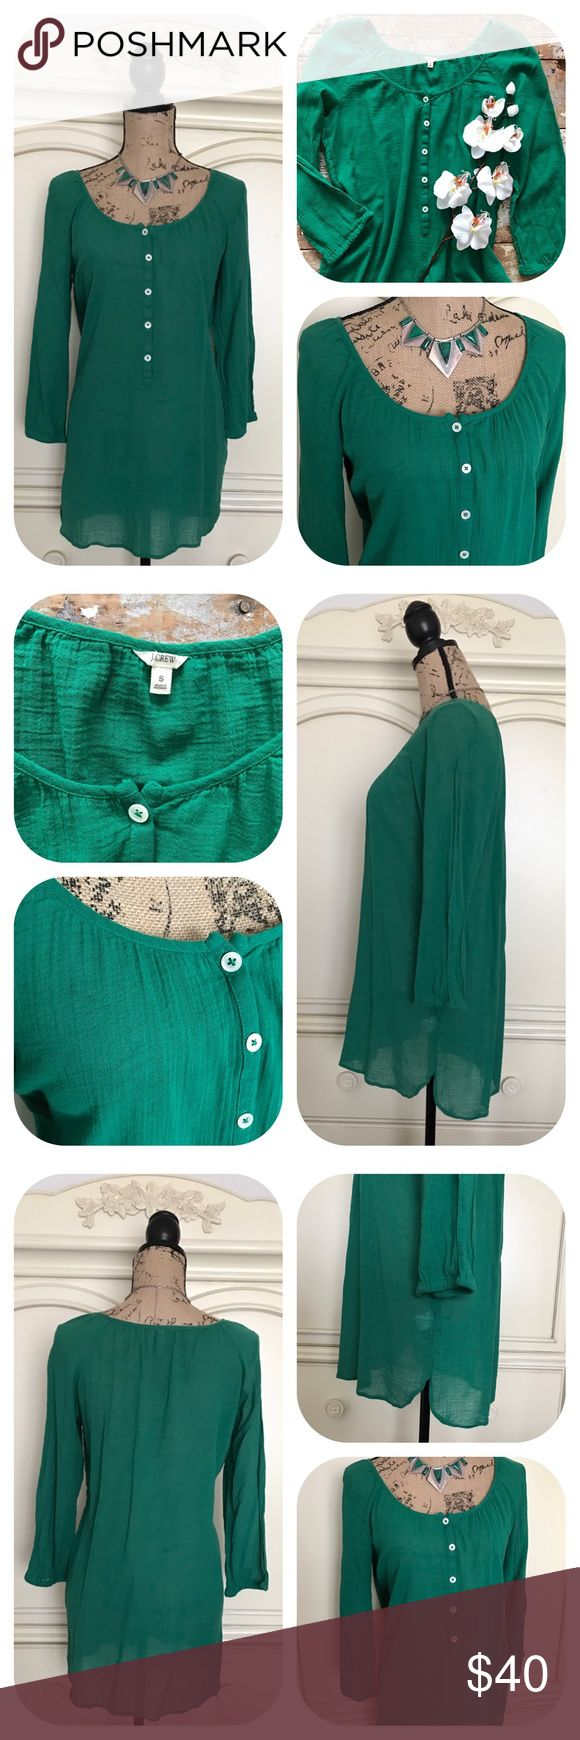 J.Crew Whisper Gauze Beachcomber Tunic in Green This J.Crew Whisper beachcomber tunic is an easy-breezy essential in their famous cotton gauze. Super cute peasant style green top w/ graceful gathers at the wide neckline, 5 button-up placket, high-low bottom cut, semi-sheer, 3/4 sleeves. A billowy warm-weather favorite, it layers beautifully over bikinis or tank & shorts. Hits at mid-thigh. In excellent clean condition. Size Small. 100% cotton 🎈No holds/trades 🎈No lowball offers, open to…